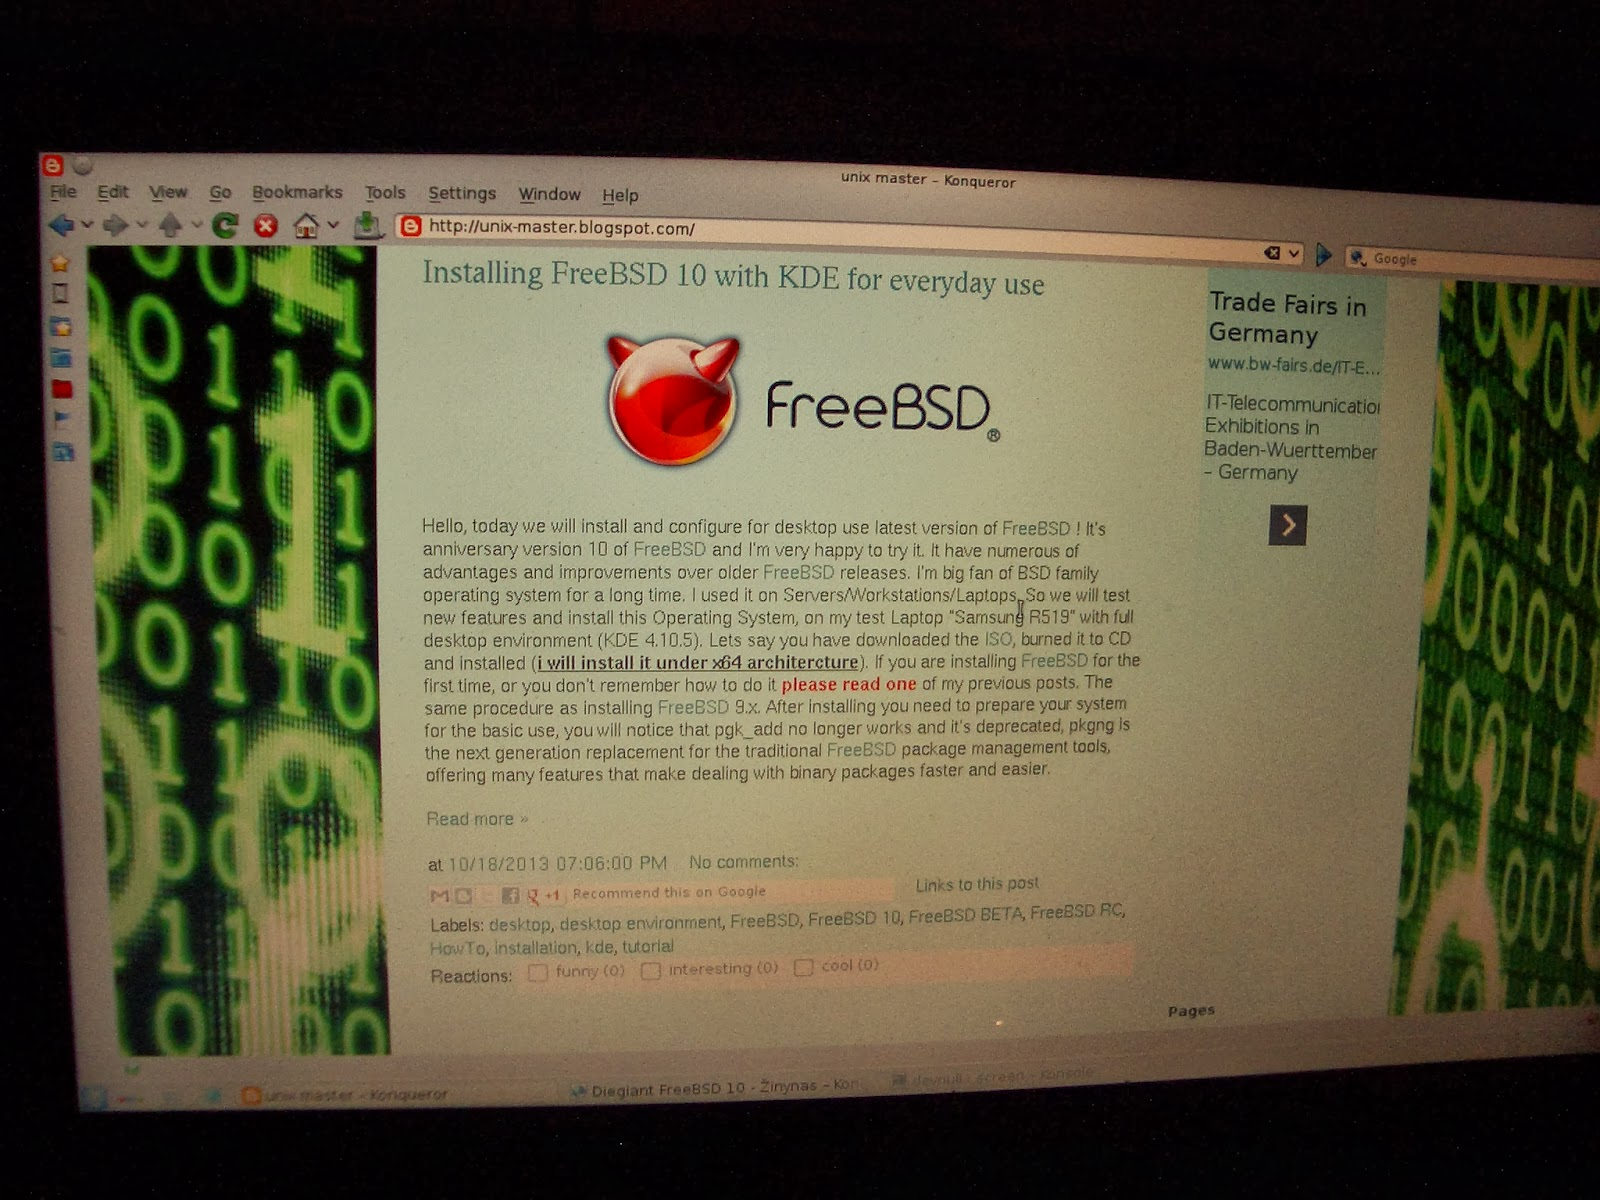 Installing FreeBSD 10 with KDE for everyday use - Unix Master